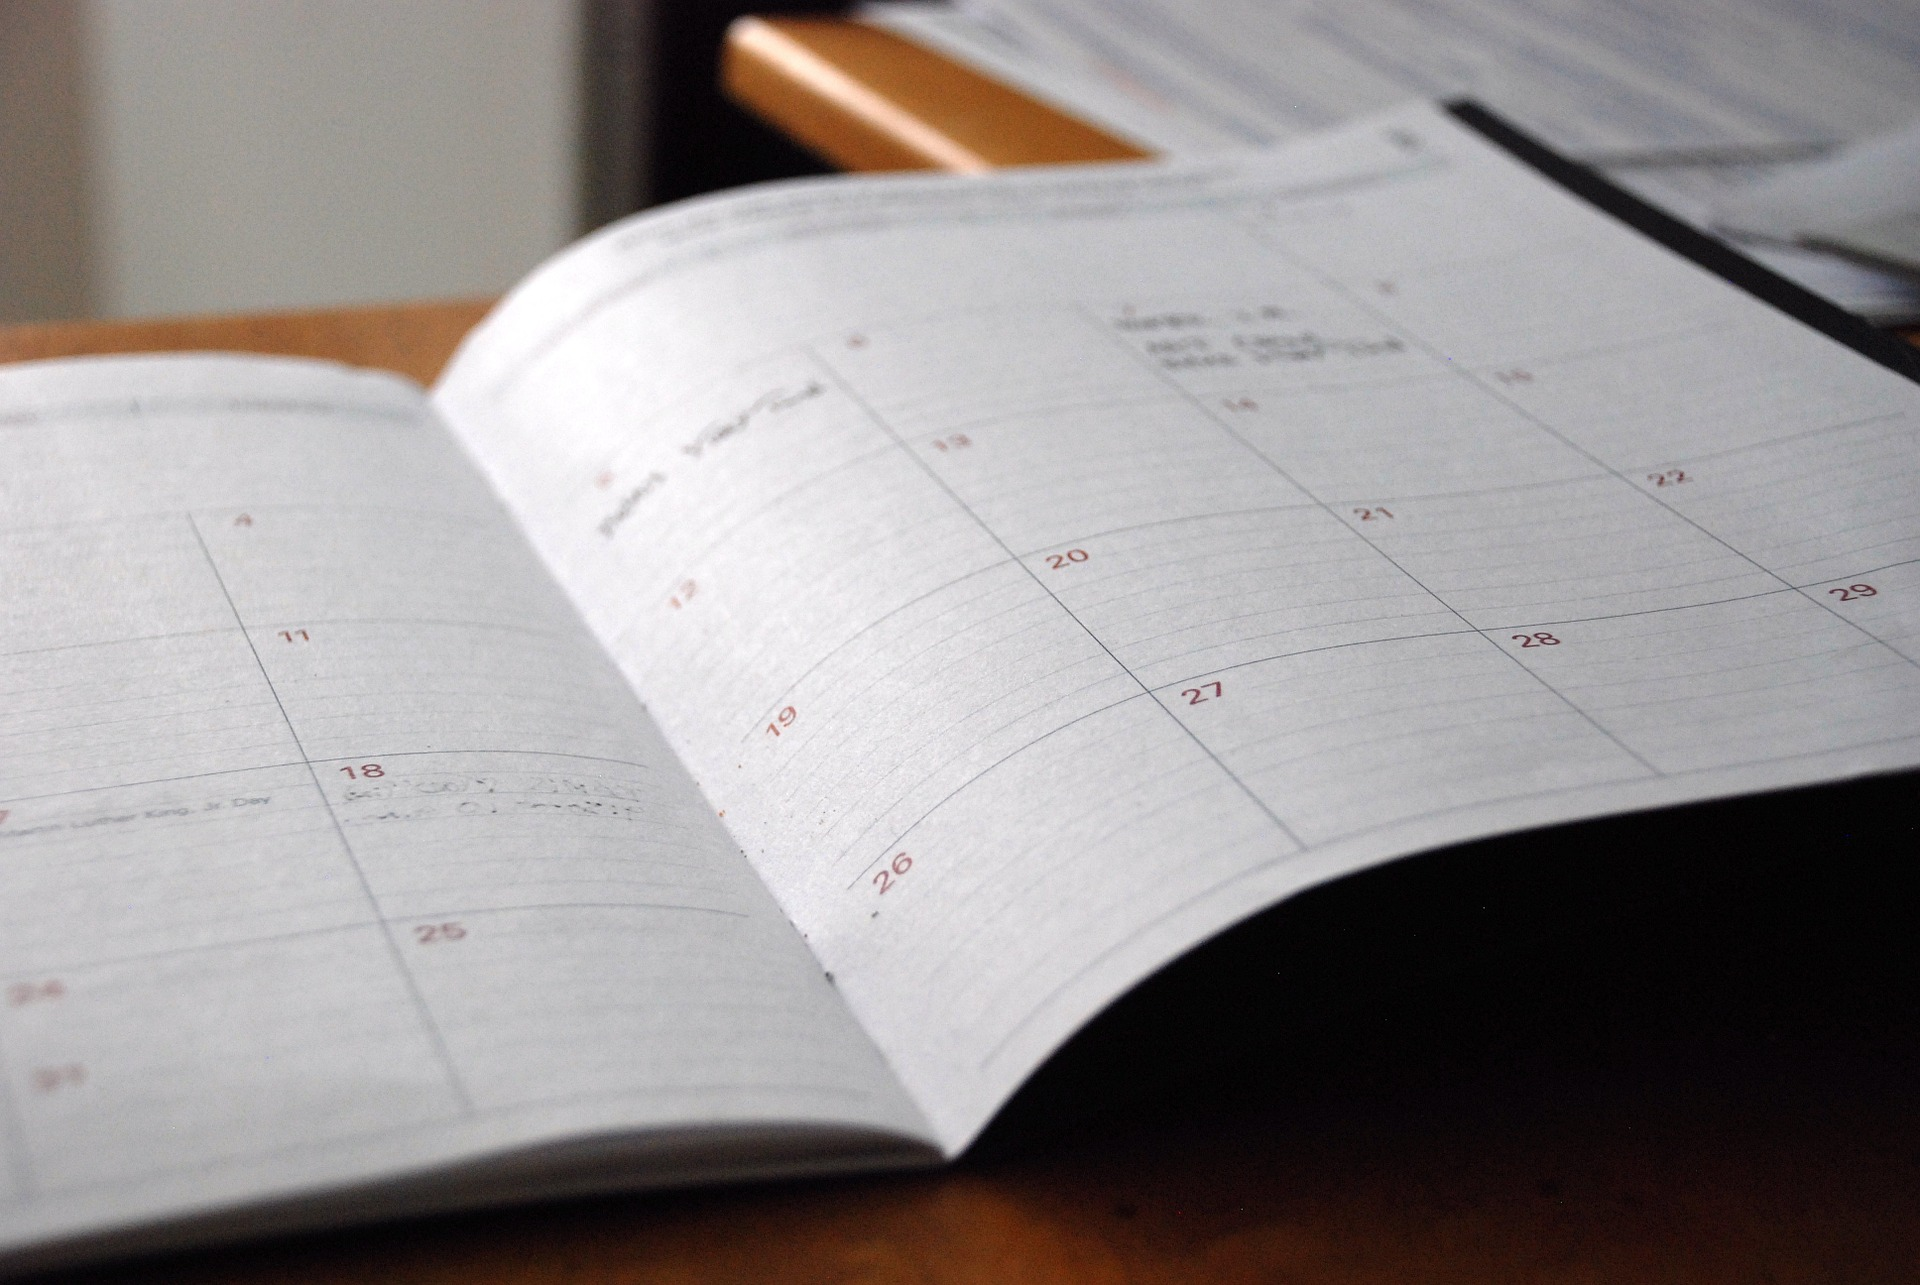 Picture of a day planner, an essential tool if you would like to get organized.